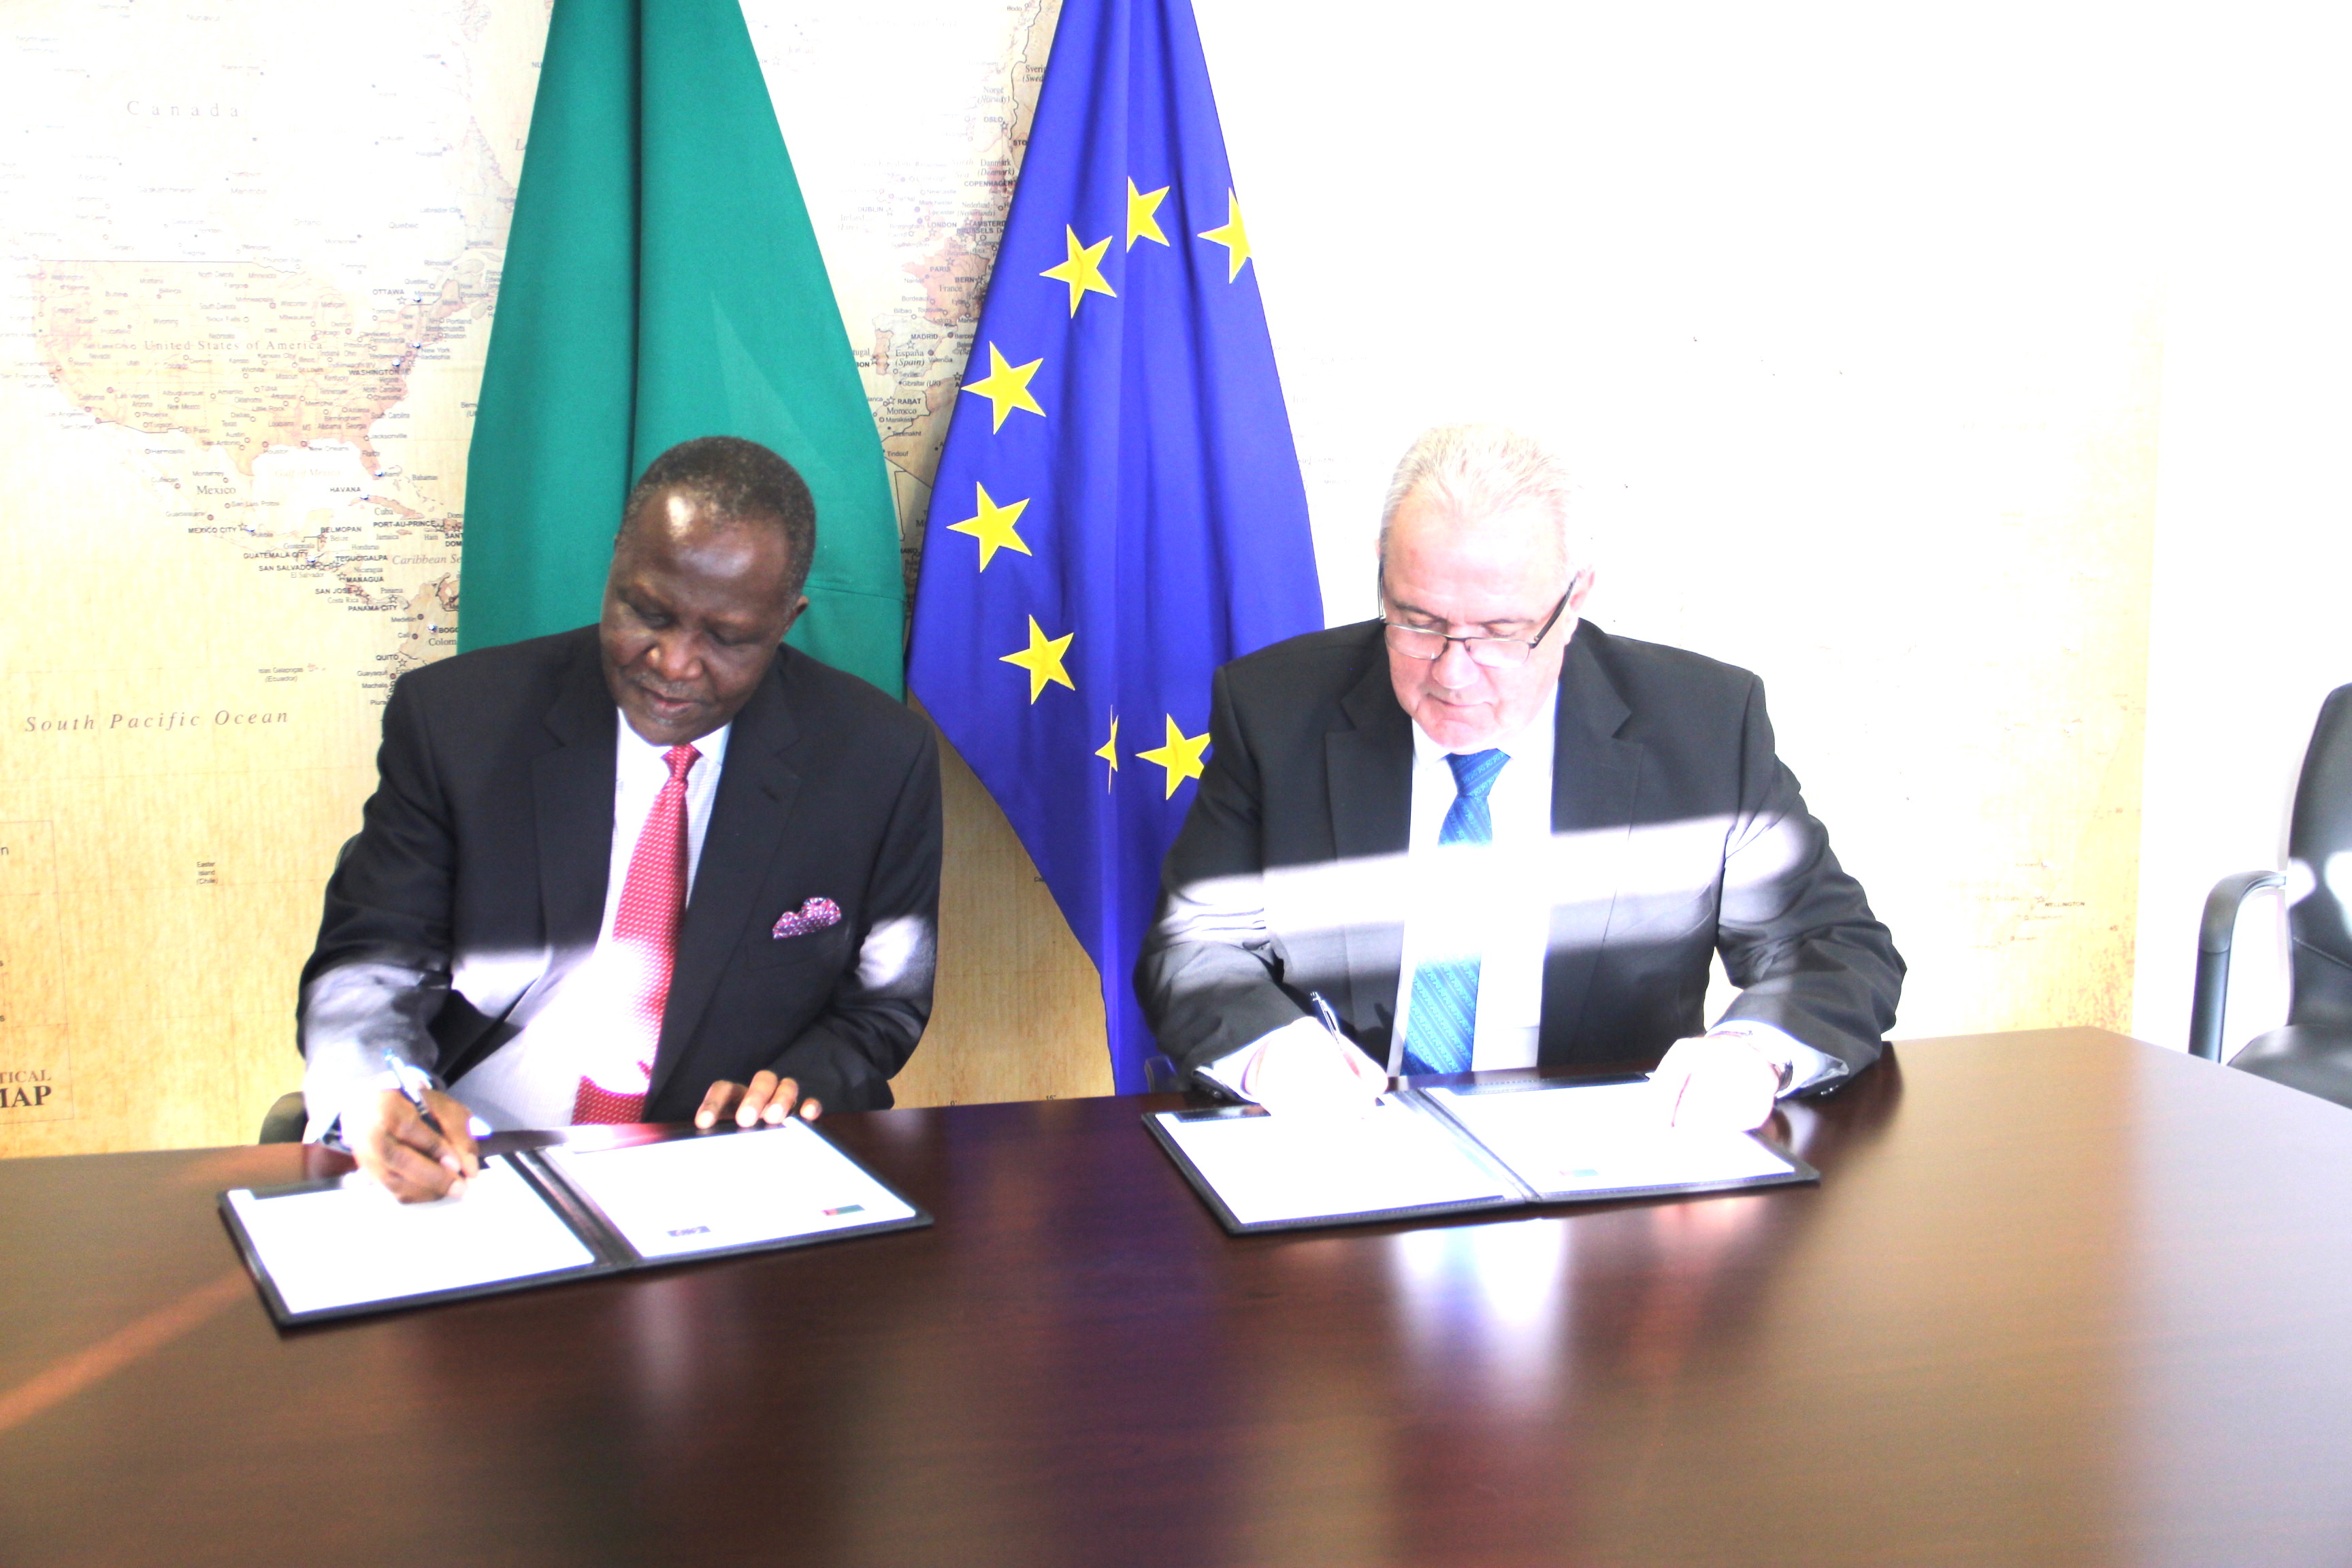 http://zebru.org/images/zambian%20finance%20minister%20felix%20mutati%20with%20eu%20commissioner%20for%20international%20development%20neven%20minica%20in%20brussels.jpg